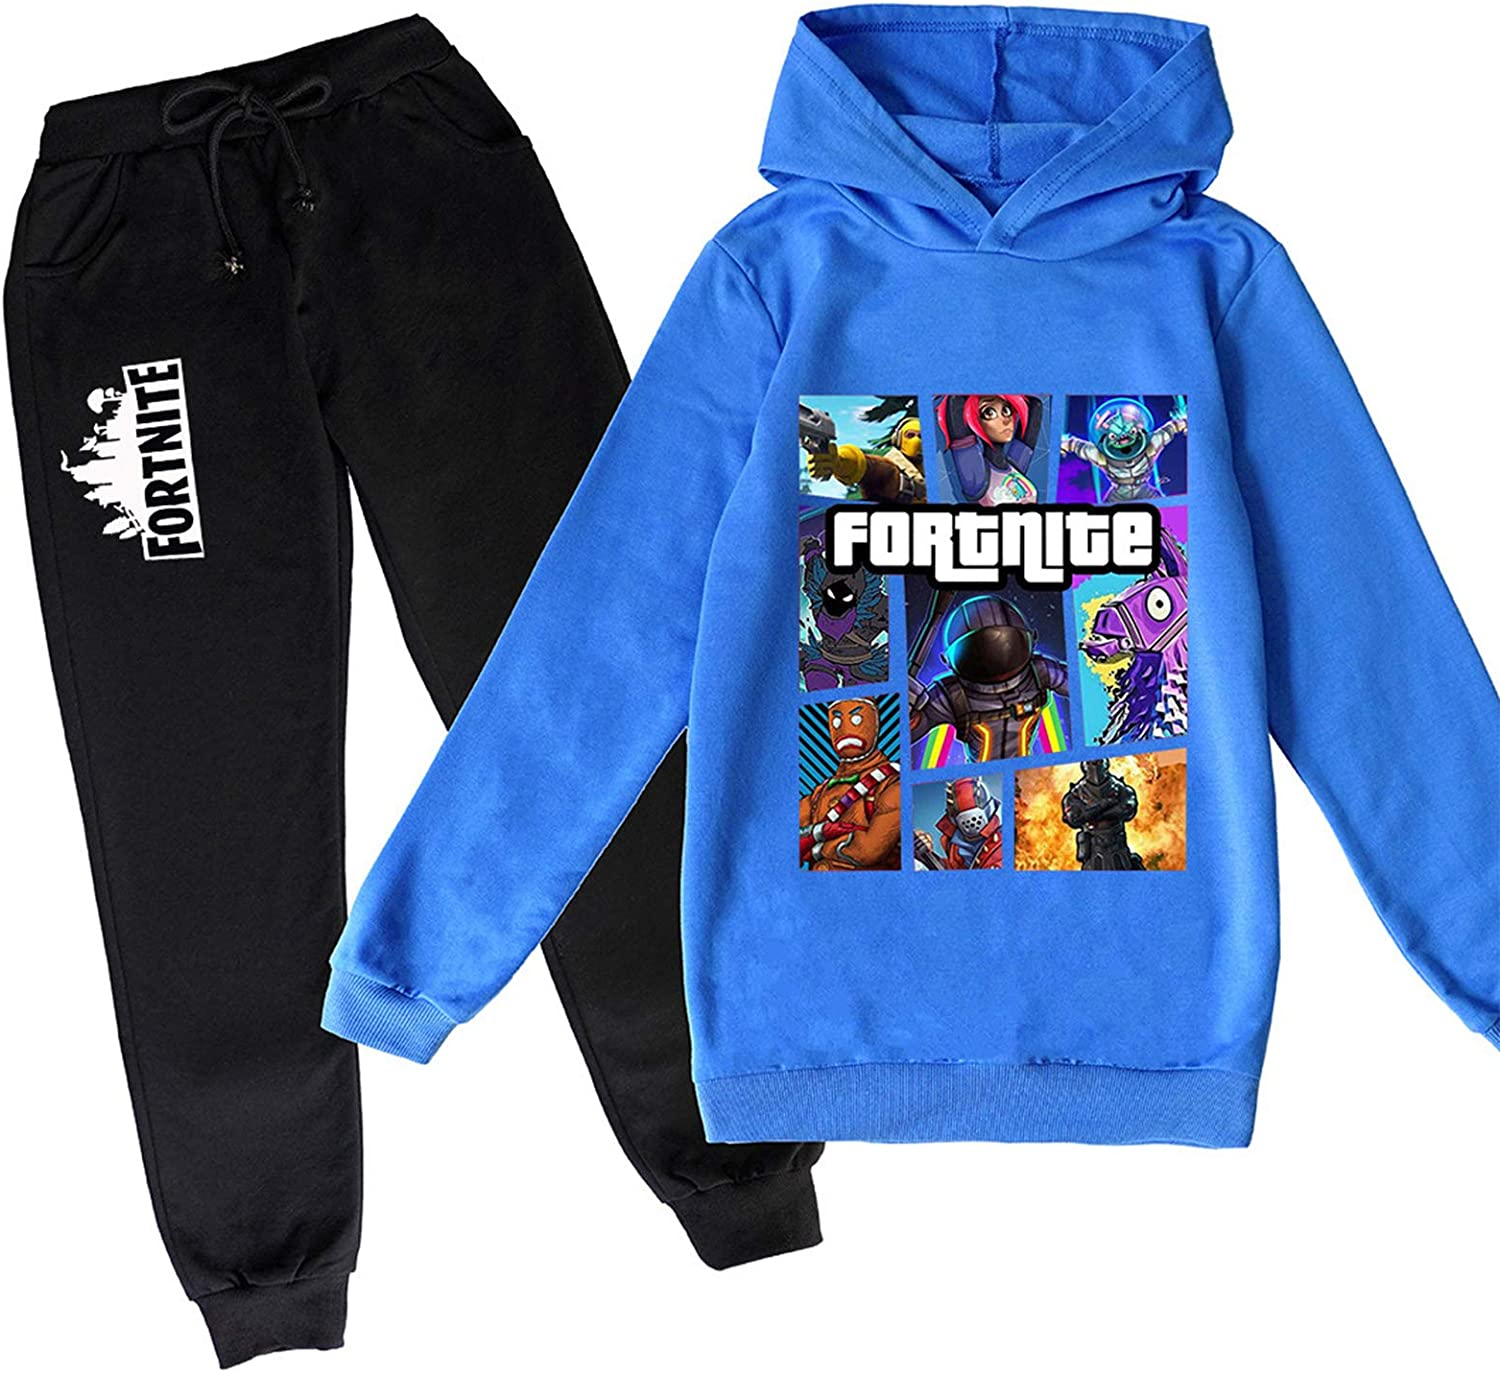 Youth Fortnite Pullover Hoodie and Sweatpants Suit for Boys Girls...